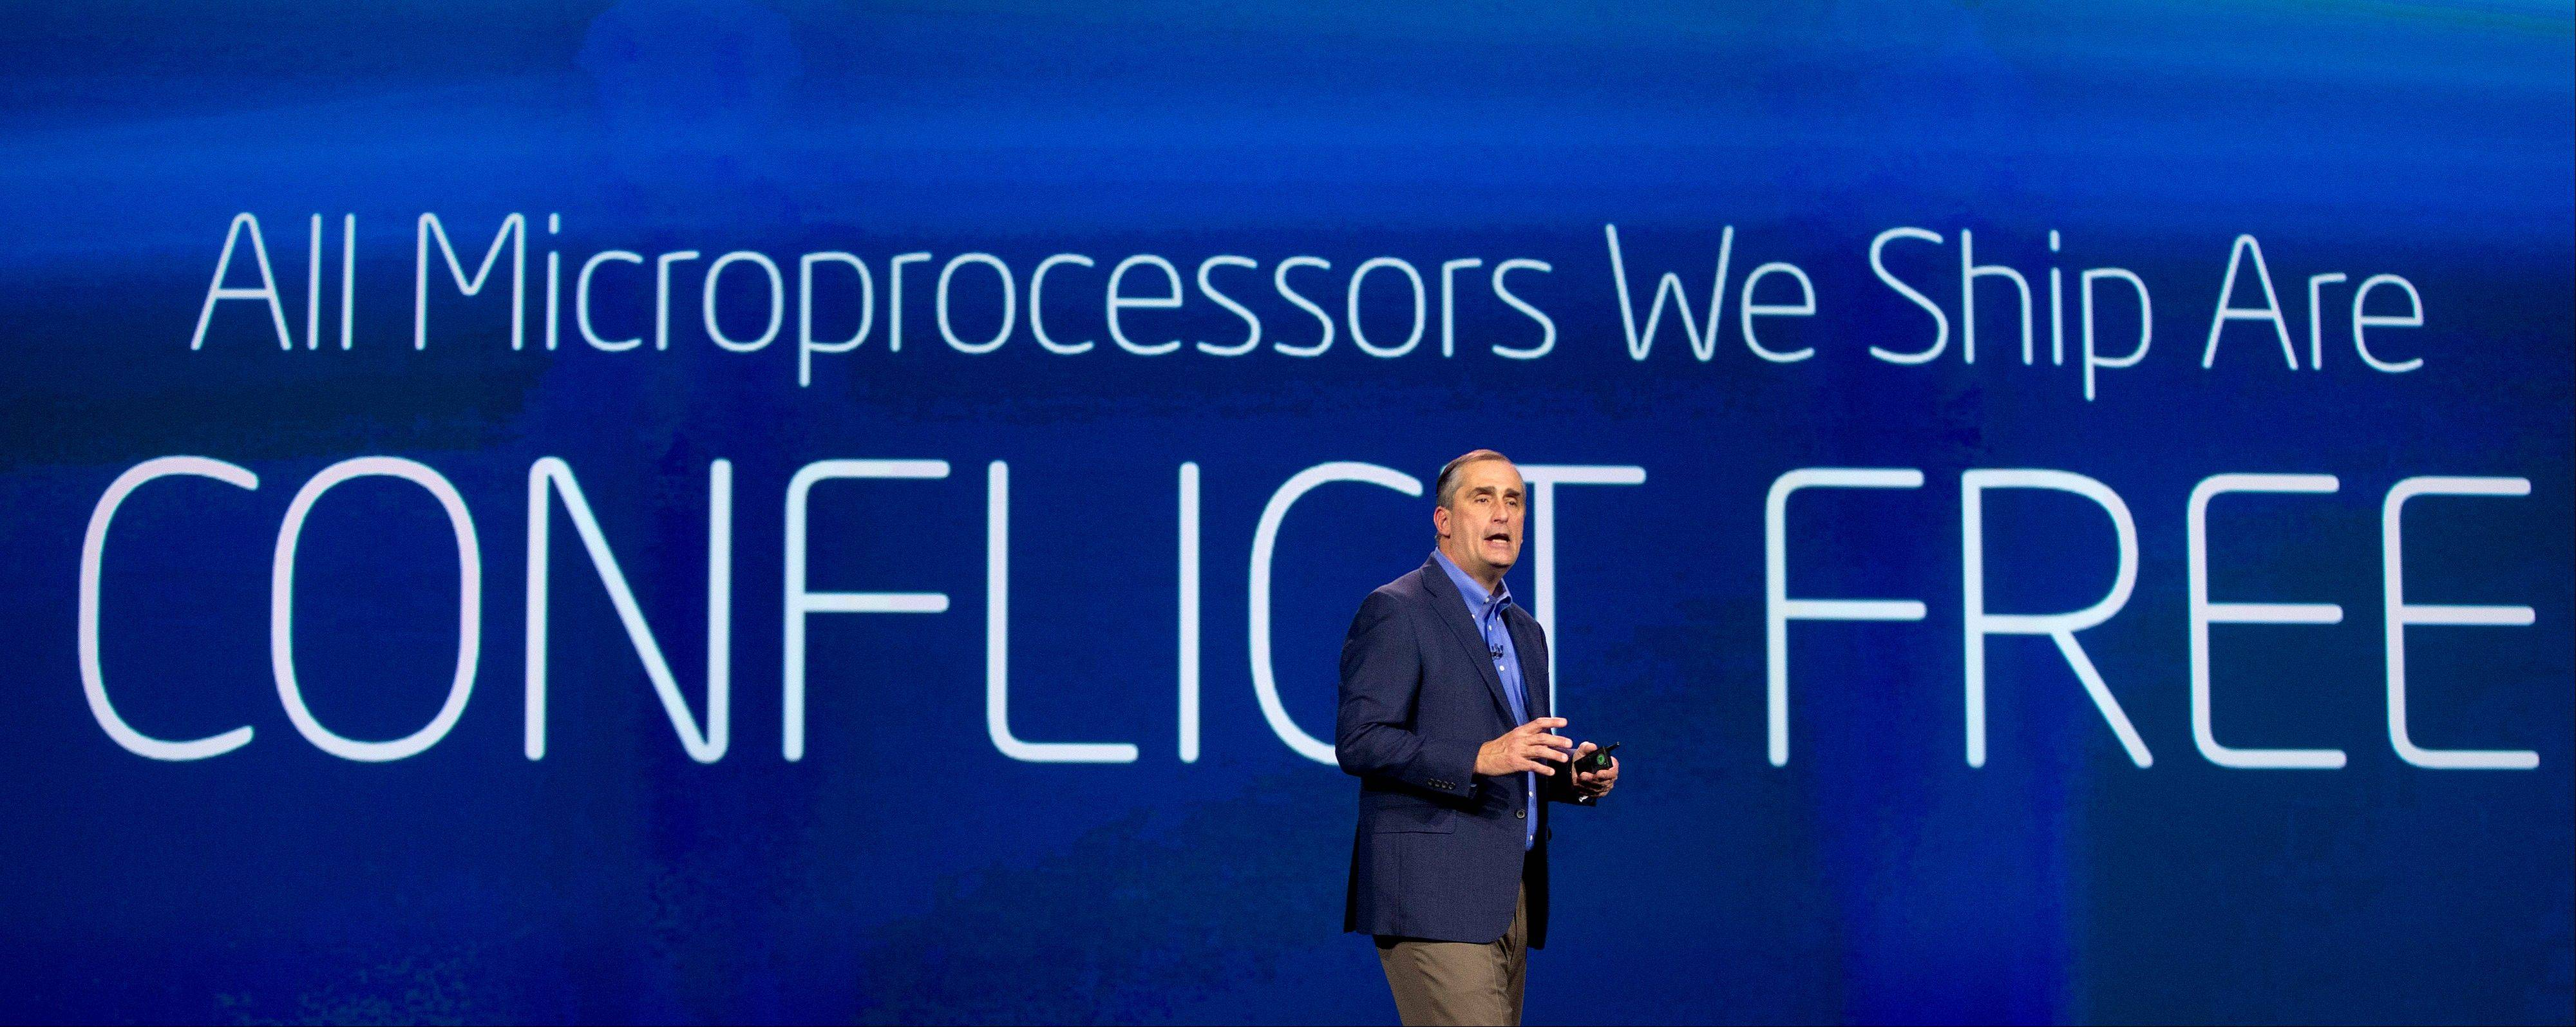 Intel CEO Brian Krzanich talks about materials used to make Intel microprocessors during a keynote address at the International Consumer Electronics Show, Monday.